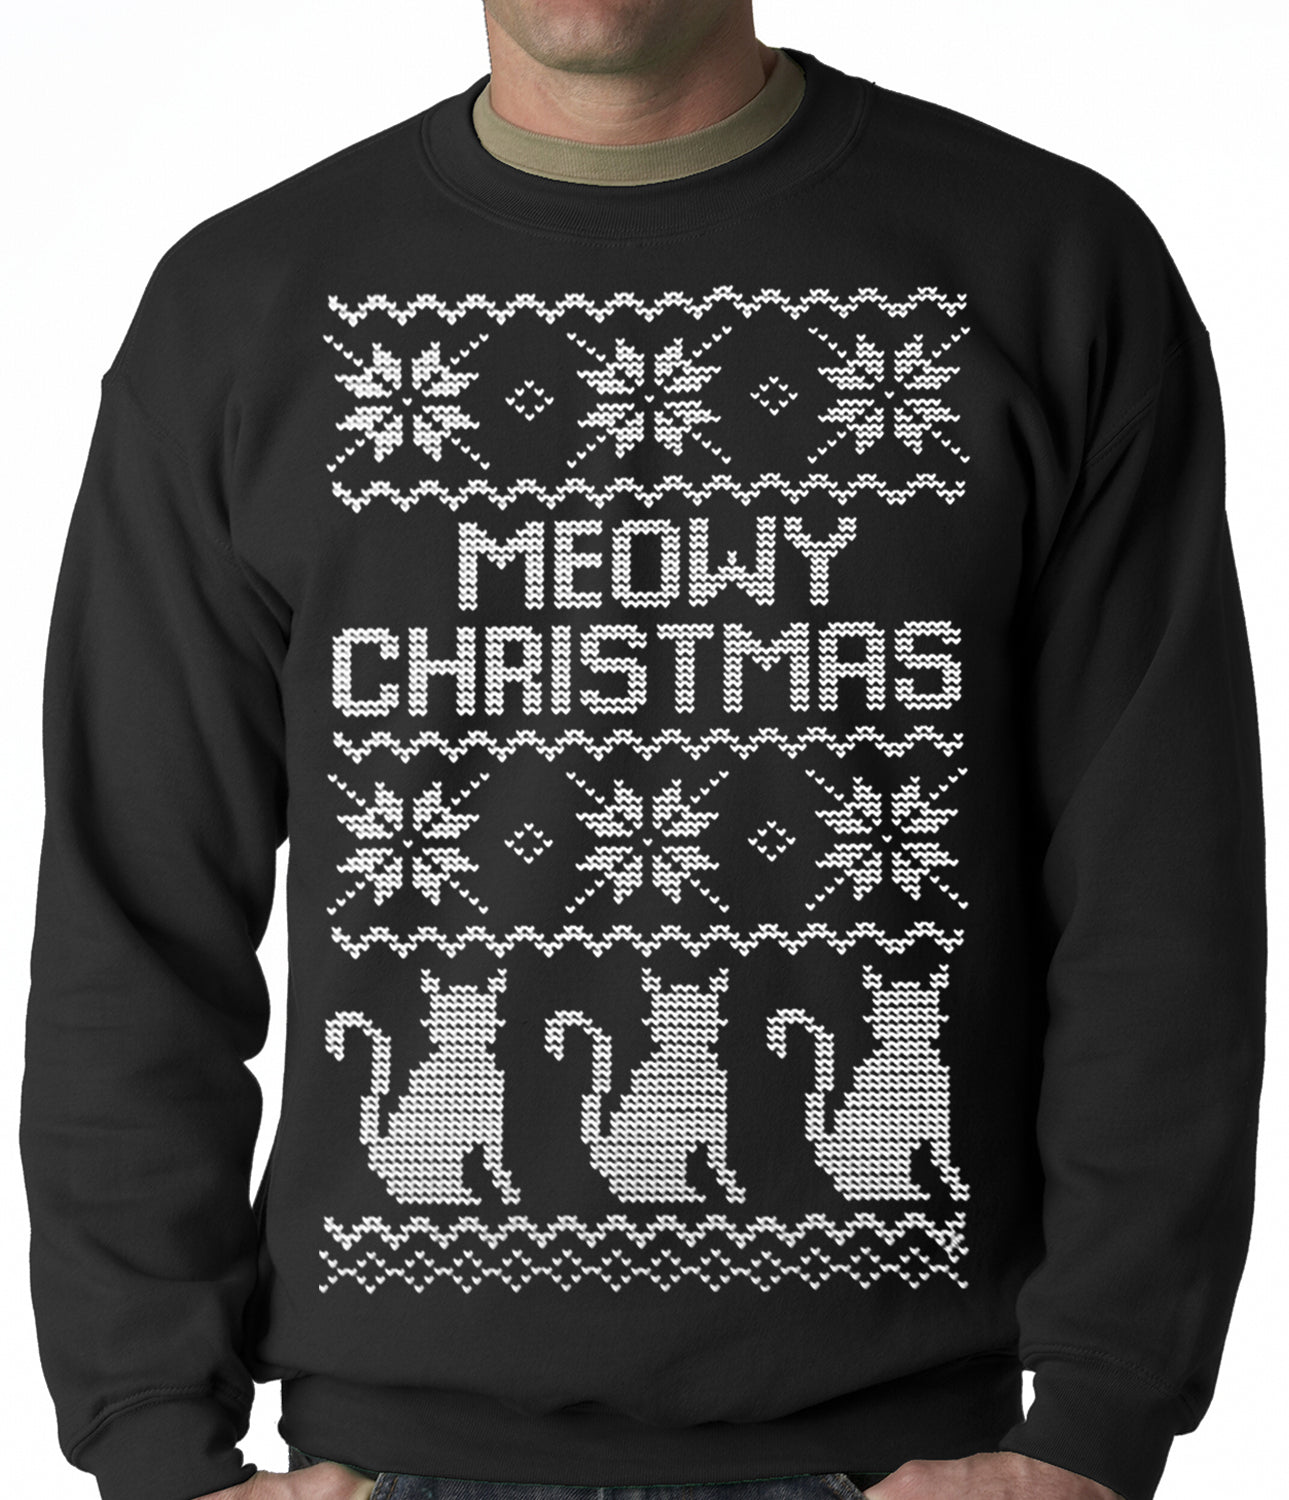 Ugly Christmas Sweater Cat.Ugly Christmas Sweater Meowy Christmas White Print 3 Cats Ugly Christmas Adult Crewneck